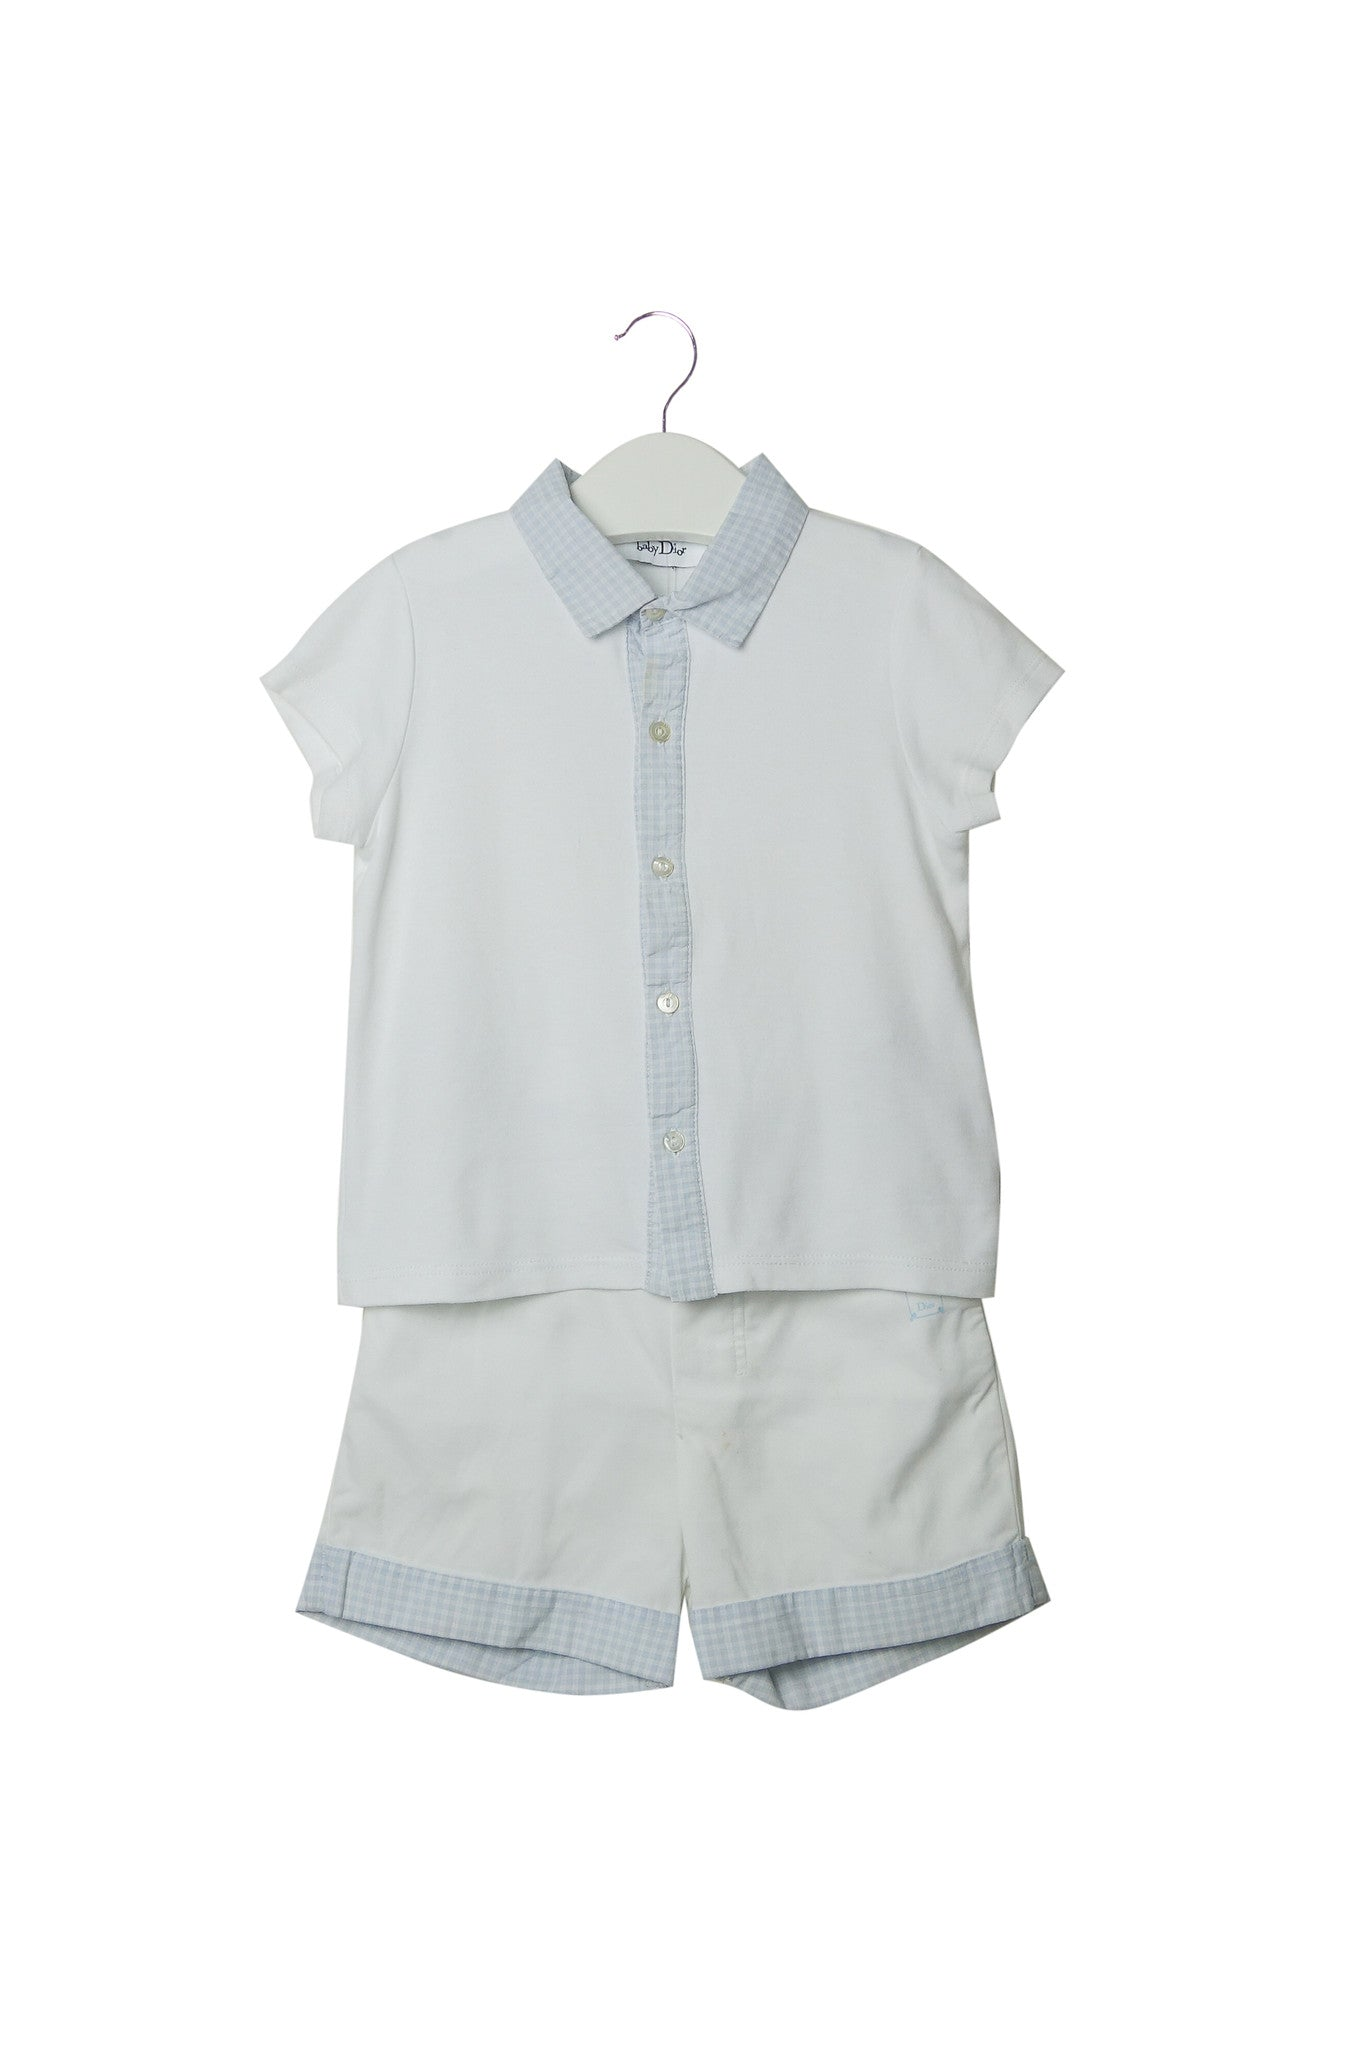 10002878 Dior Kids~Top and Shorts 2T at Retykle